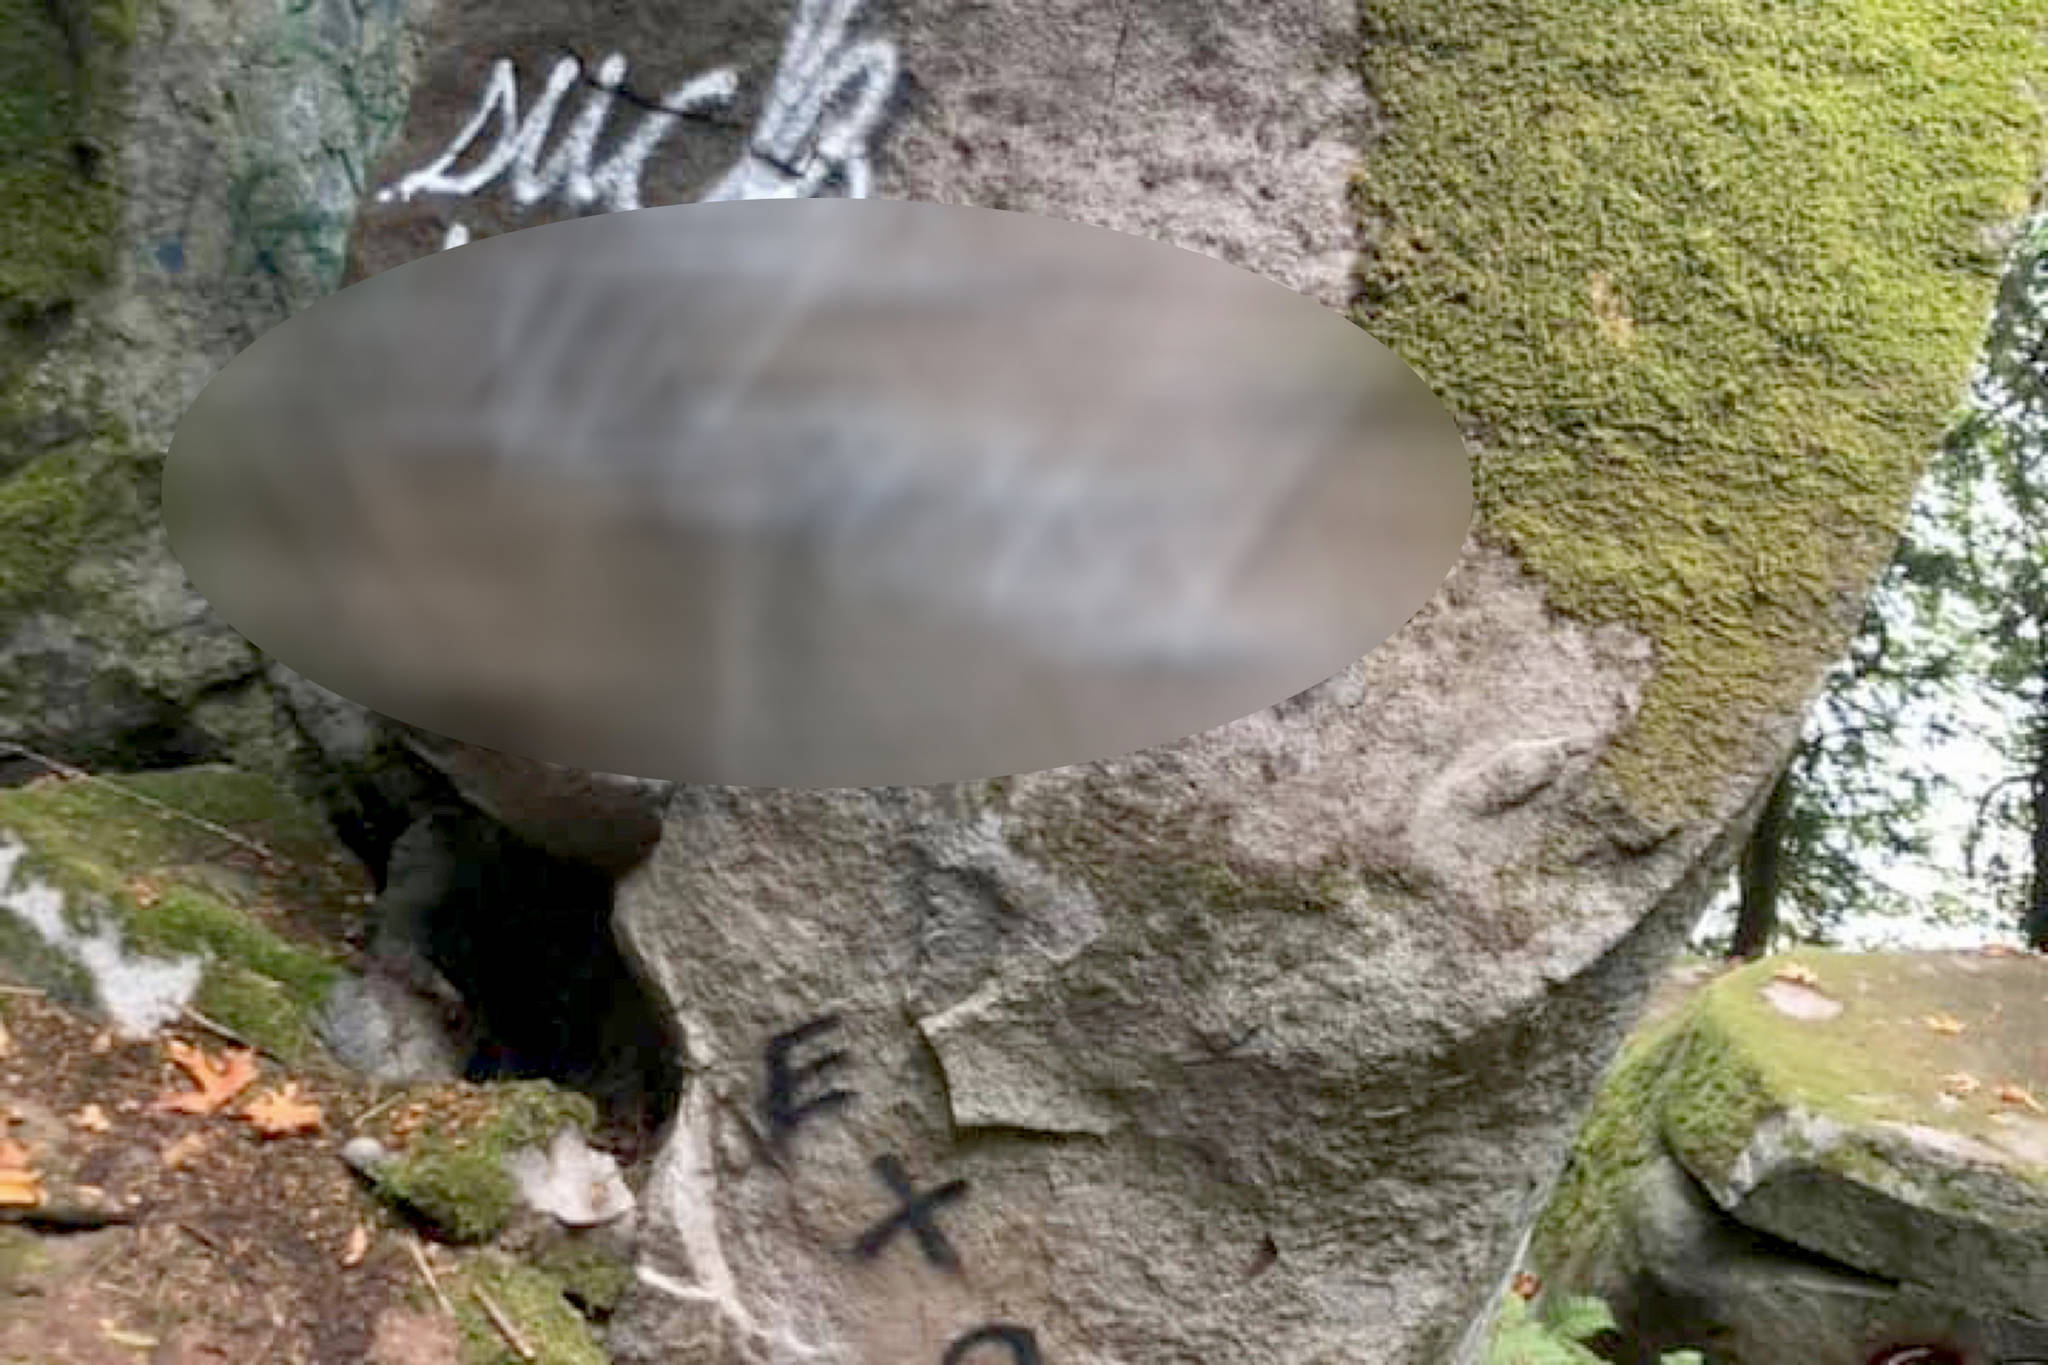 Vandals wrote an inflammatory term on a boulder outside of the hot spring source in Harrison Hot Springs earlier this week. Suspicious activity can be reported to the local detatchment by calling 604-796-2211. (Facebook/Life in Agassiz)